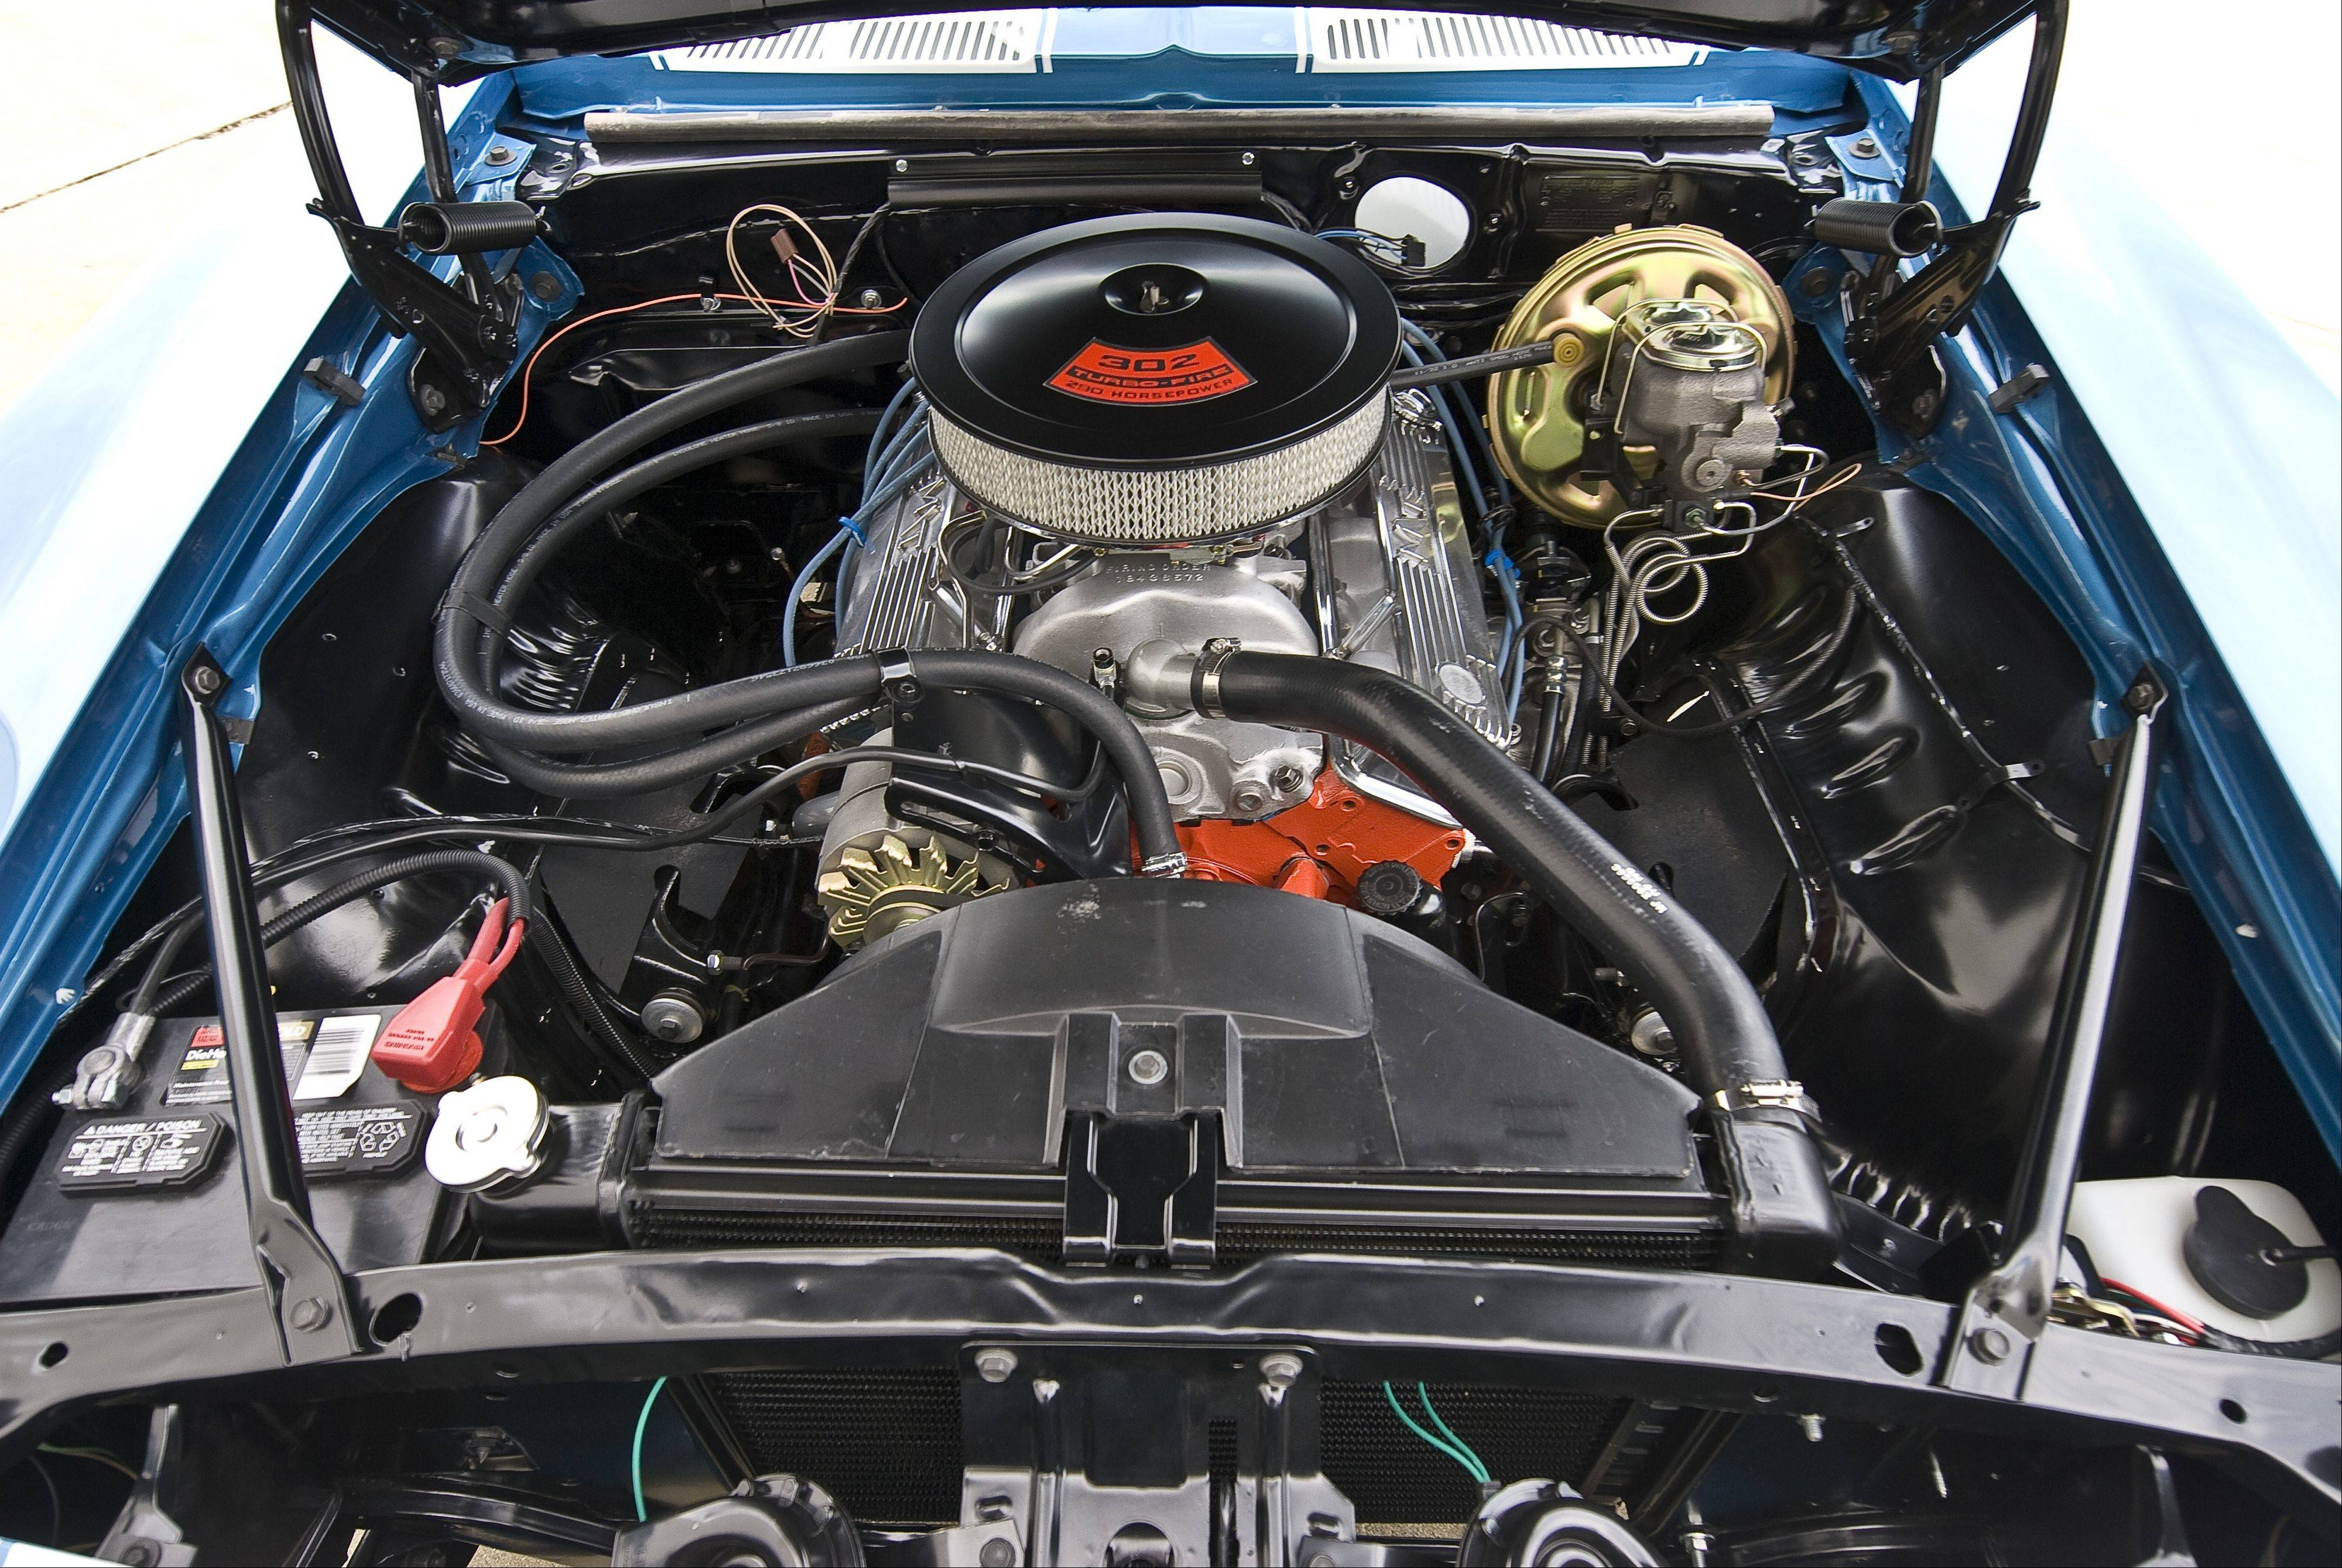 Kochanski rebuilt a 327-cubic-inch V-8 to power his muscle car.